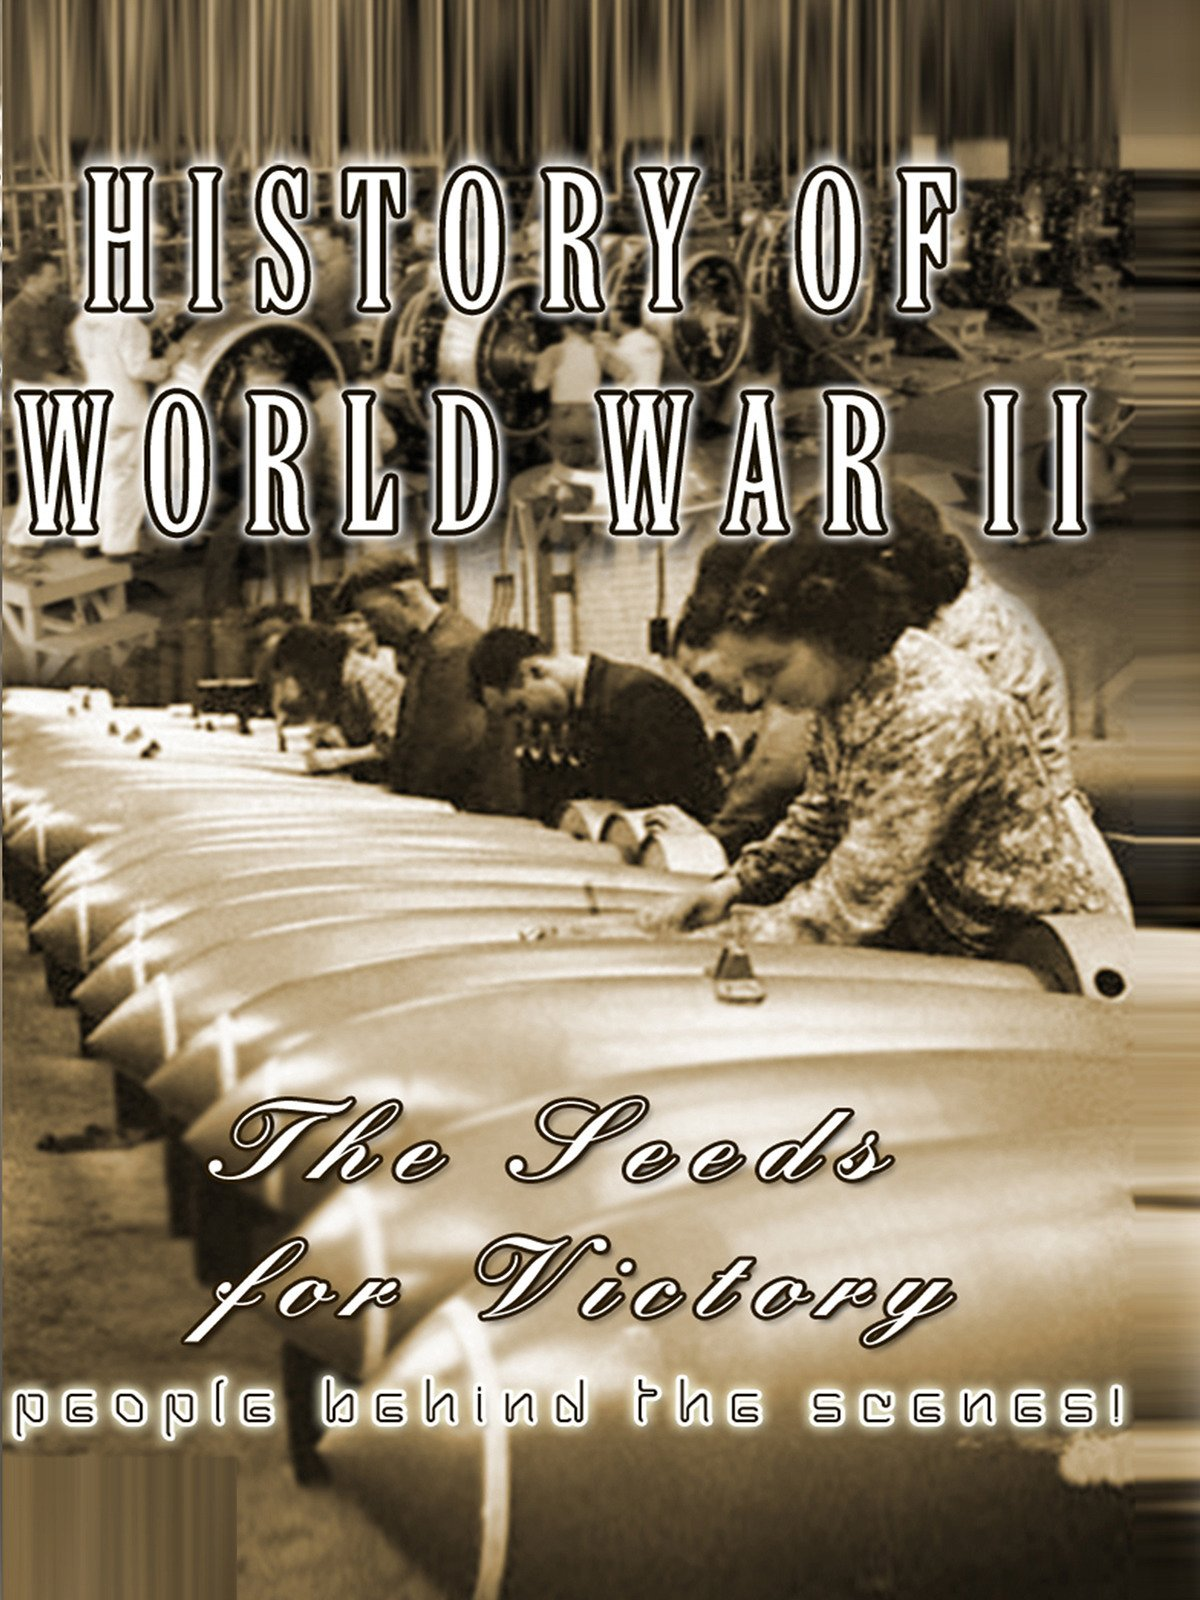 History of World War II - The Seeds For Victory - People Behind the Scenes! on Amazon Prime Video UK